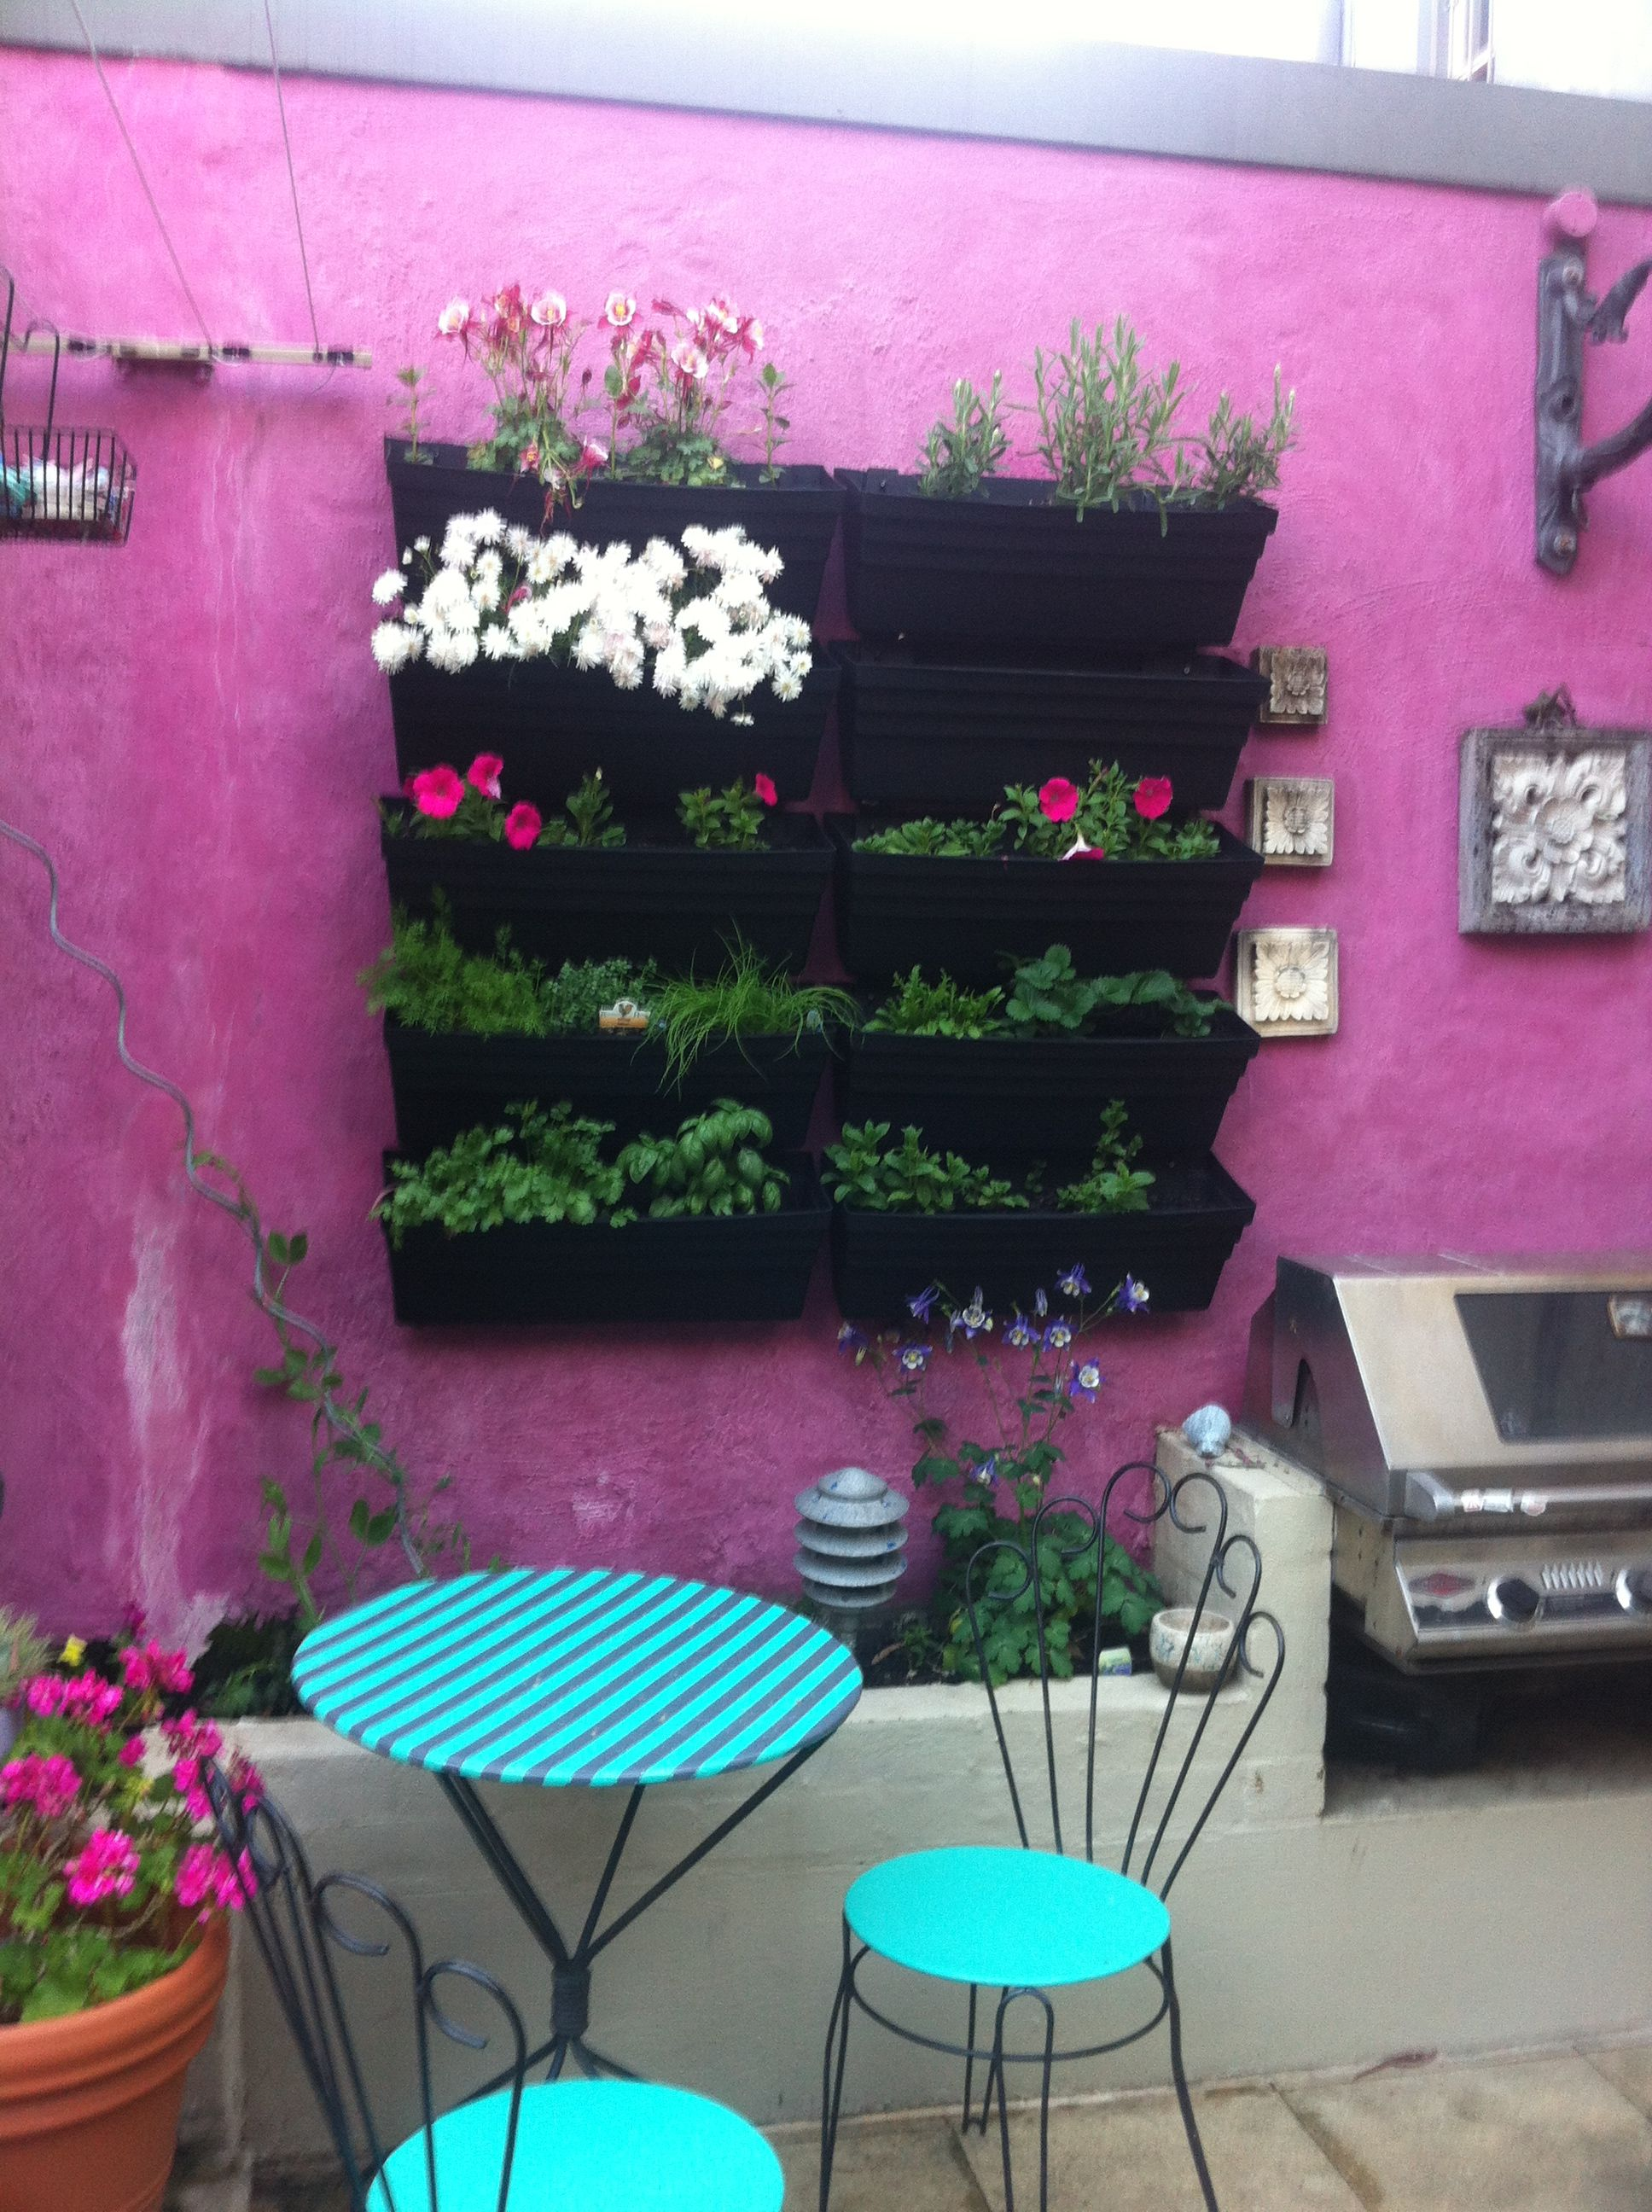 Lovely - would love to create something like this in our courtyard outside. x Our new wall garden.